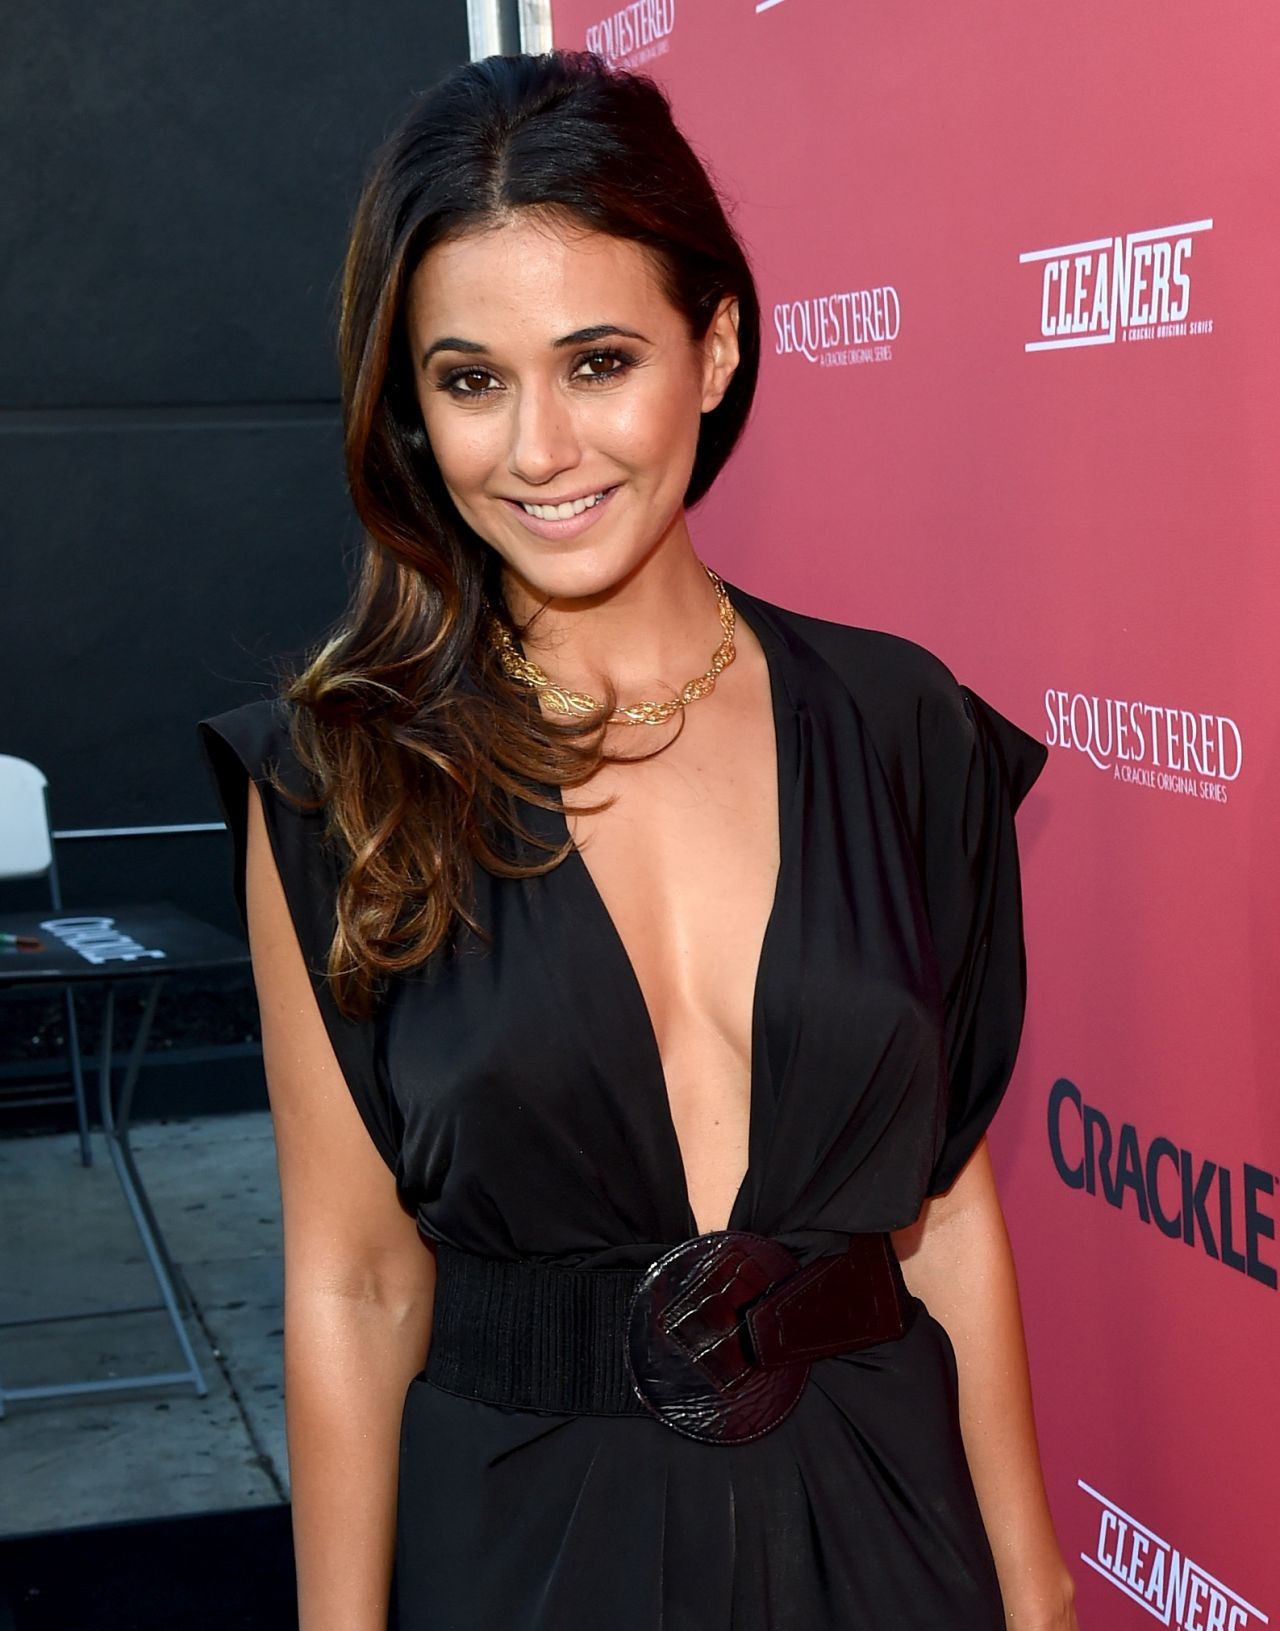 Emmanuelle Chriqui Crackle Sequestered Amp Cleaners